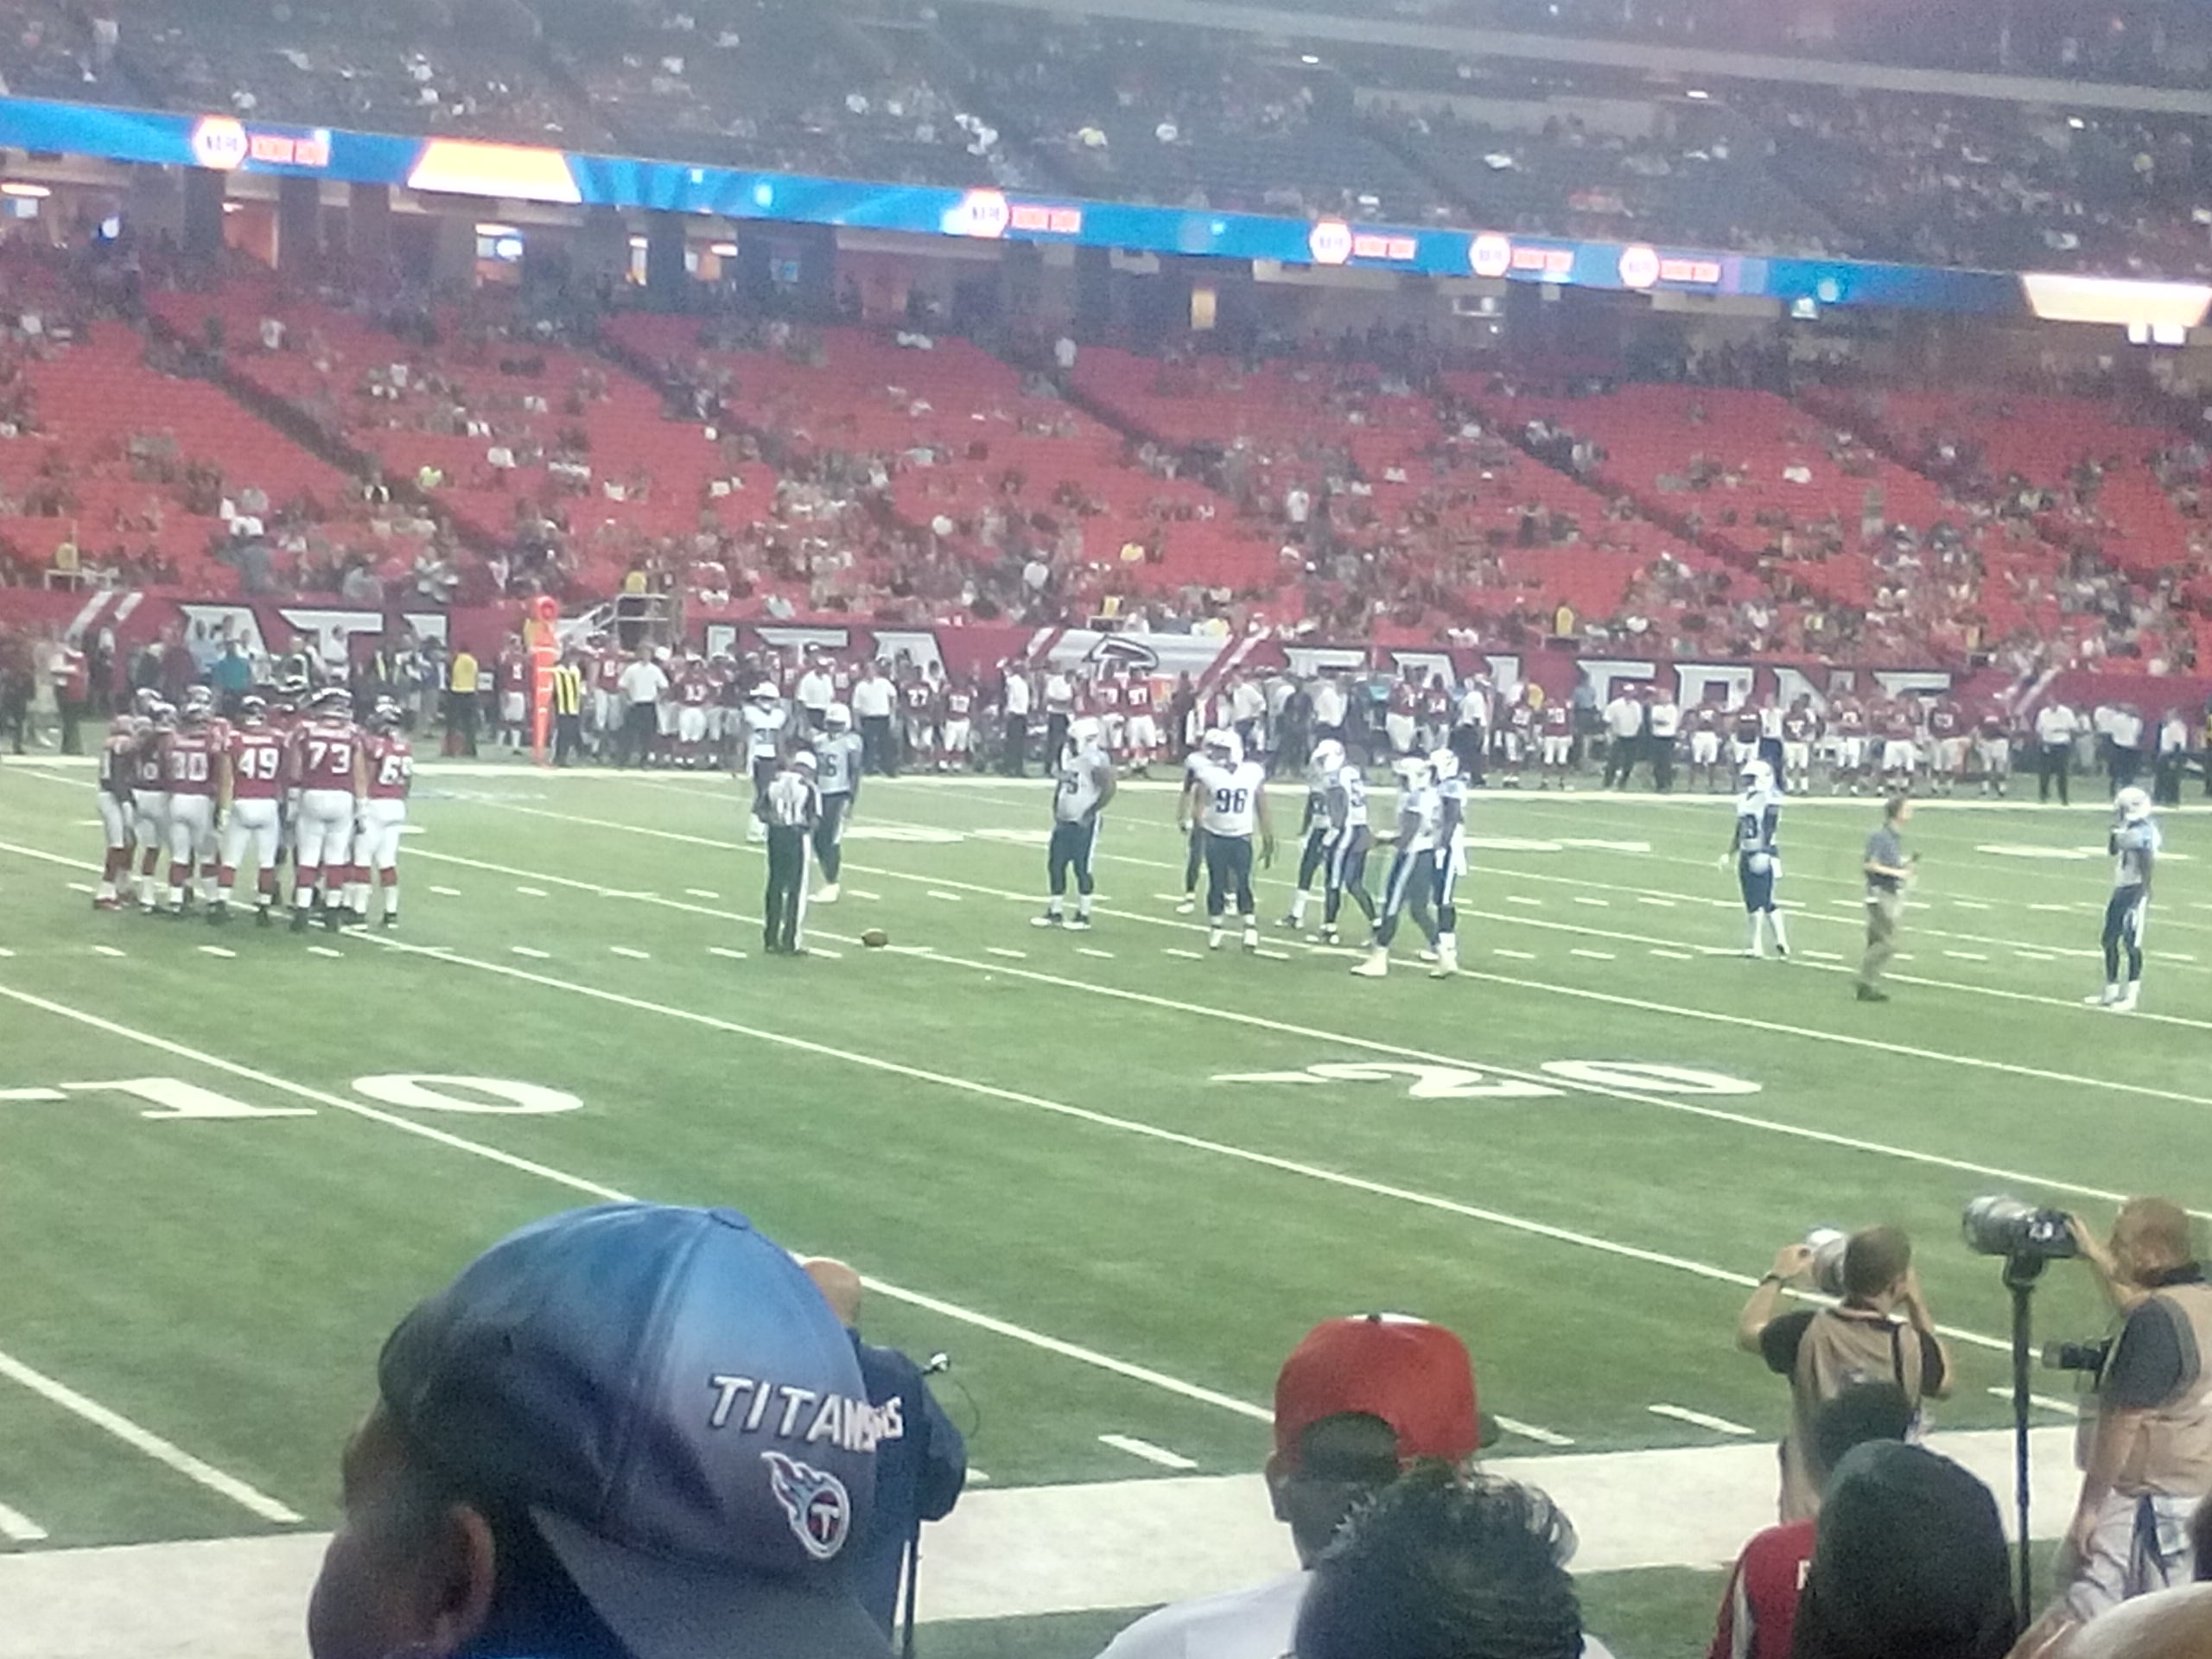 Titans vs Falcons